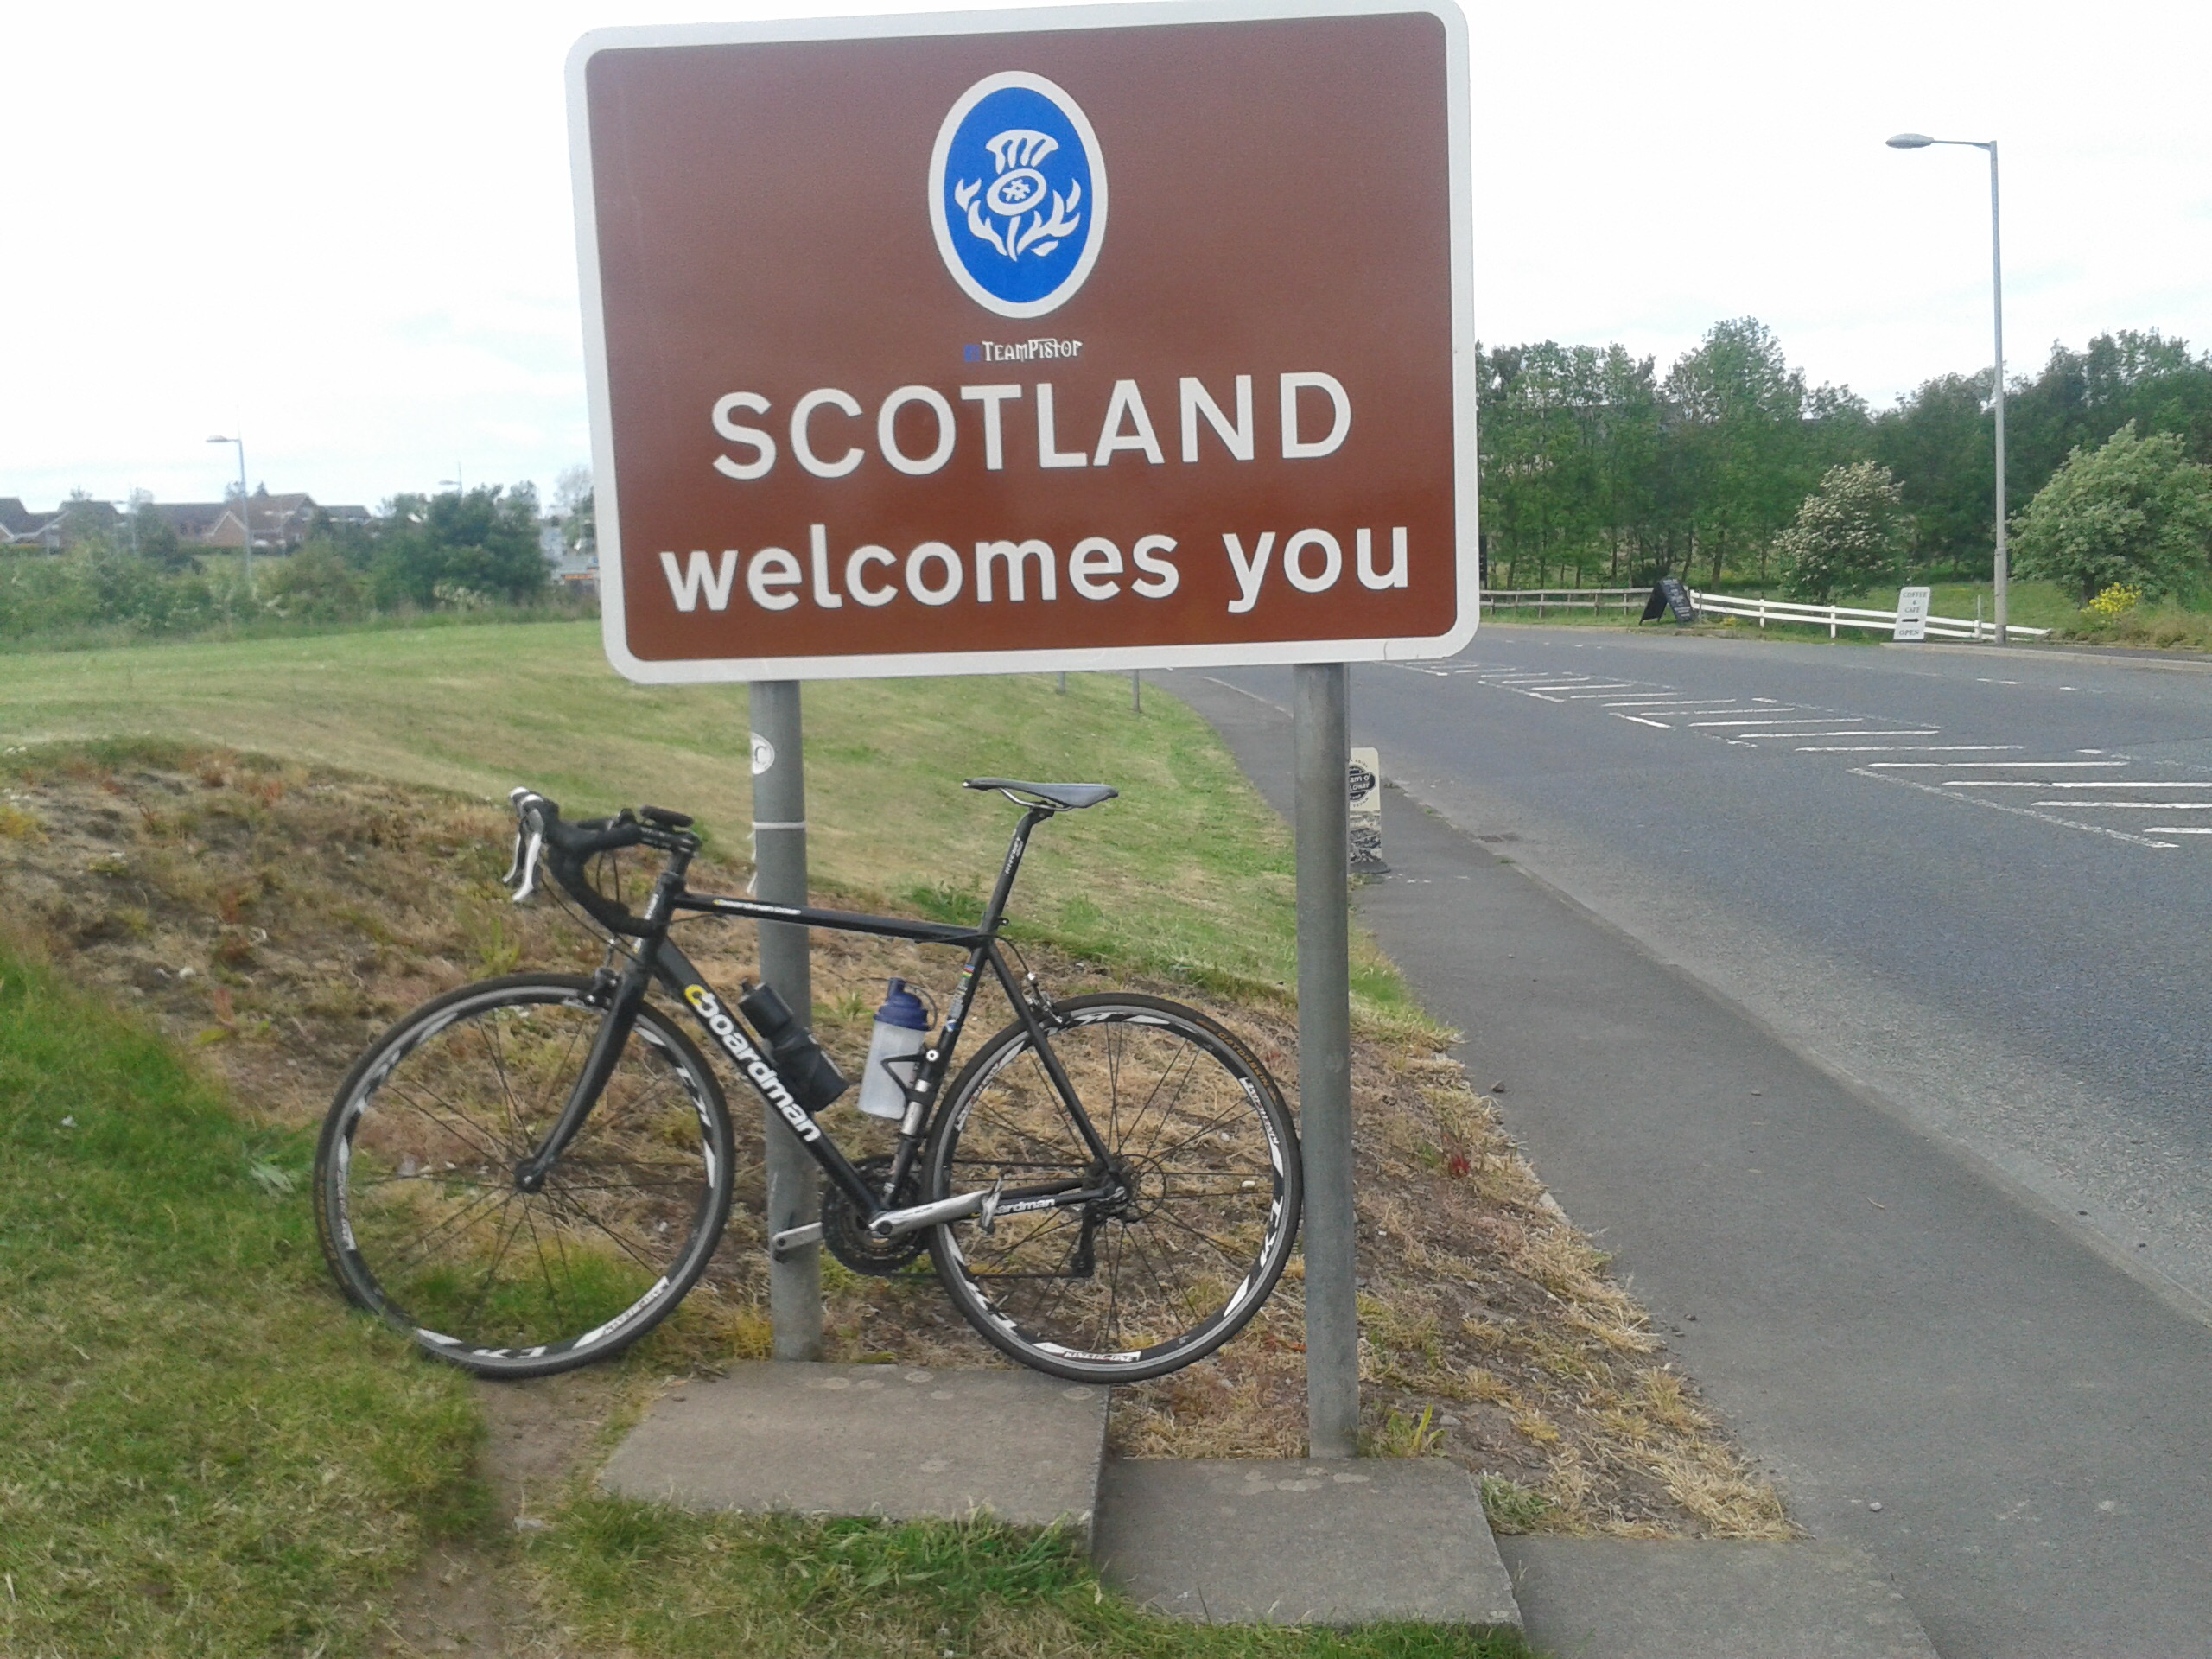 Scotland reached!